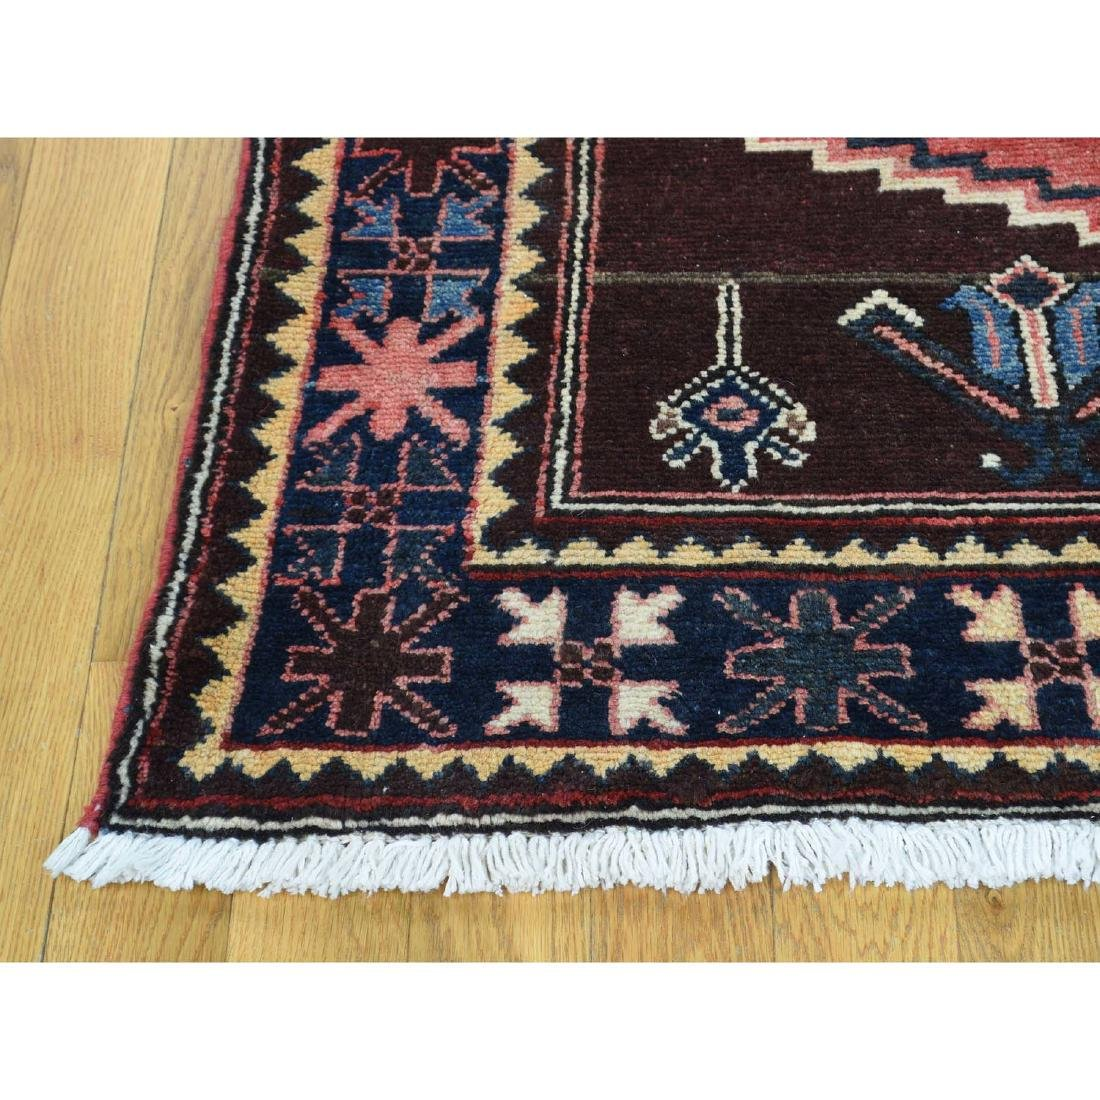 Semi Antique Persian Afshar Full Pile Mint Condition - 5